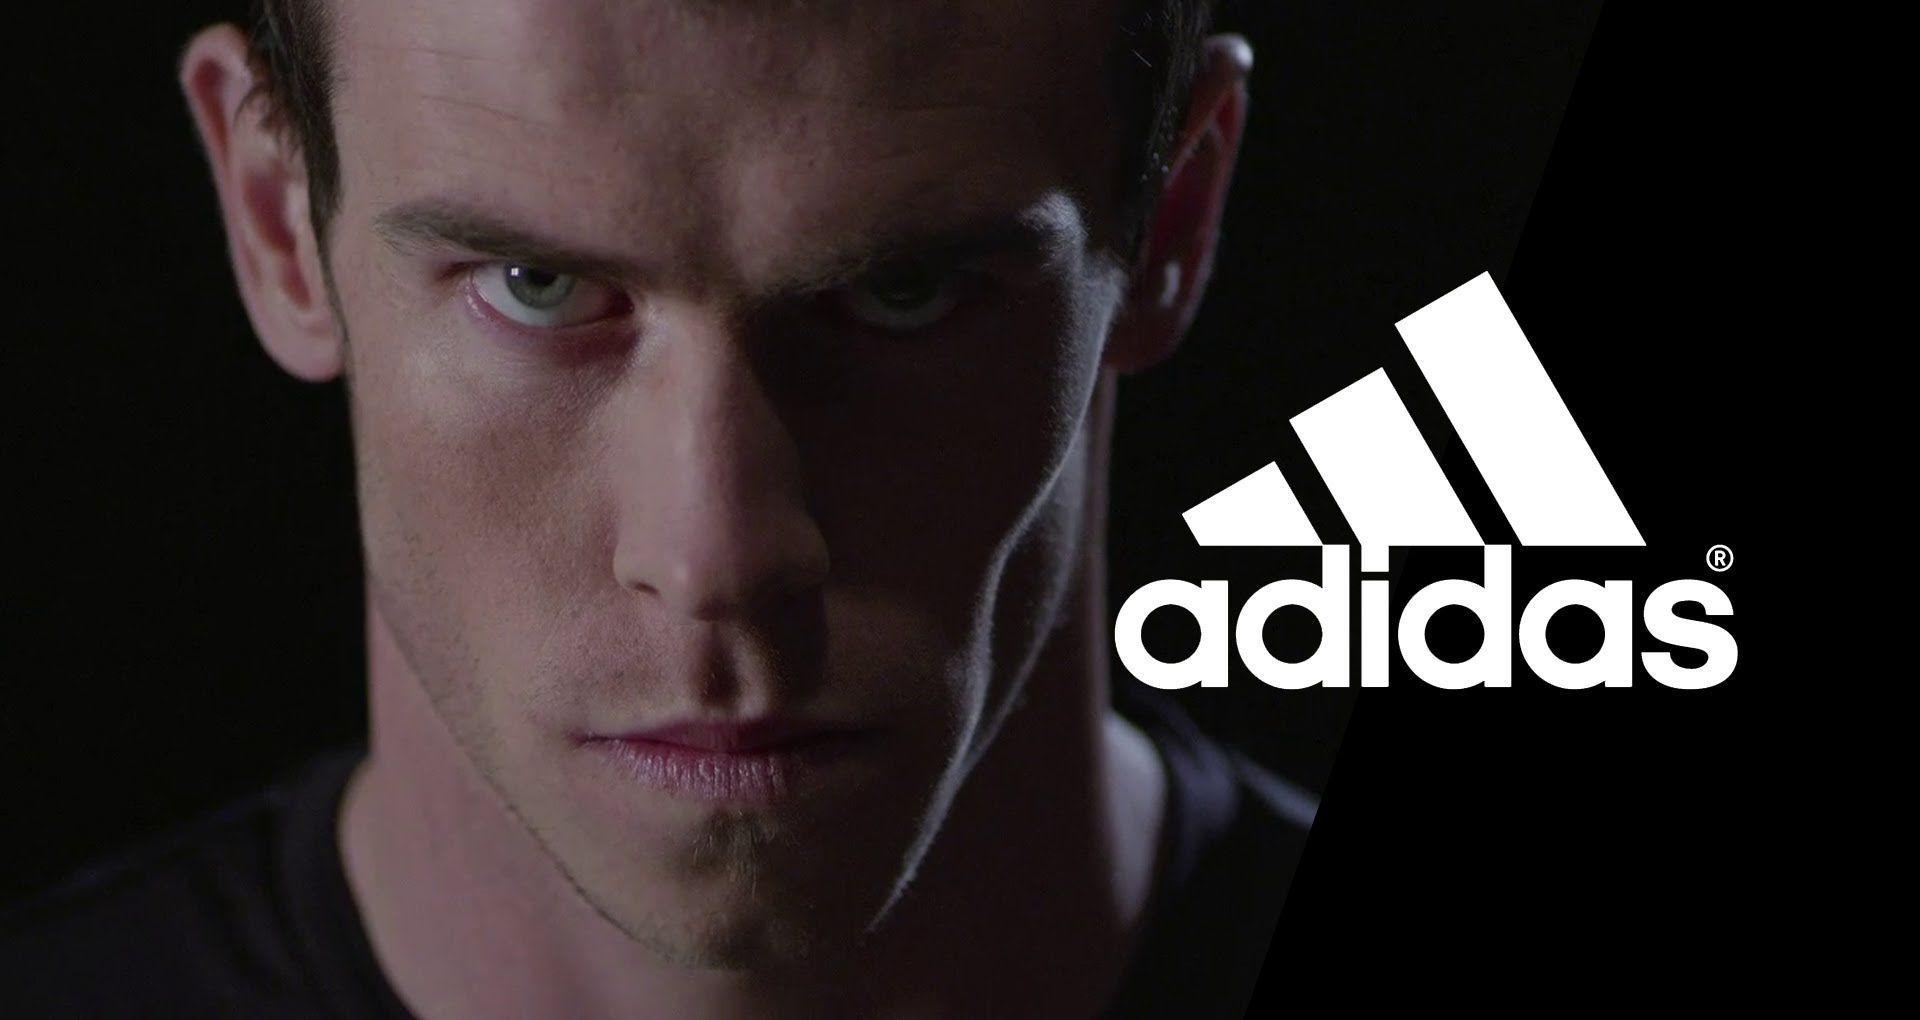 Gareth Bale Adidas Wallpaper | Download High Quality Resolution ...